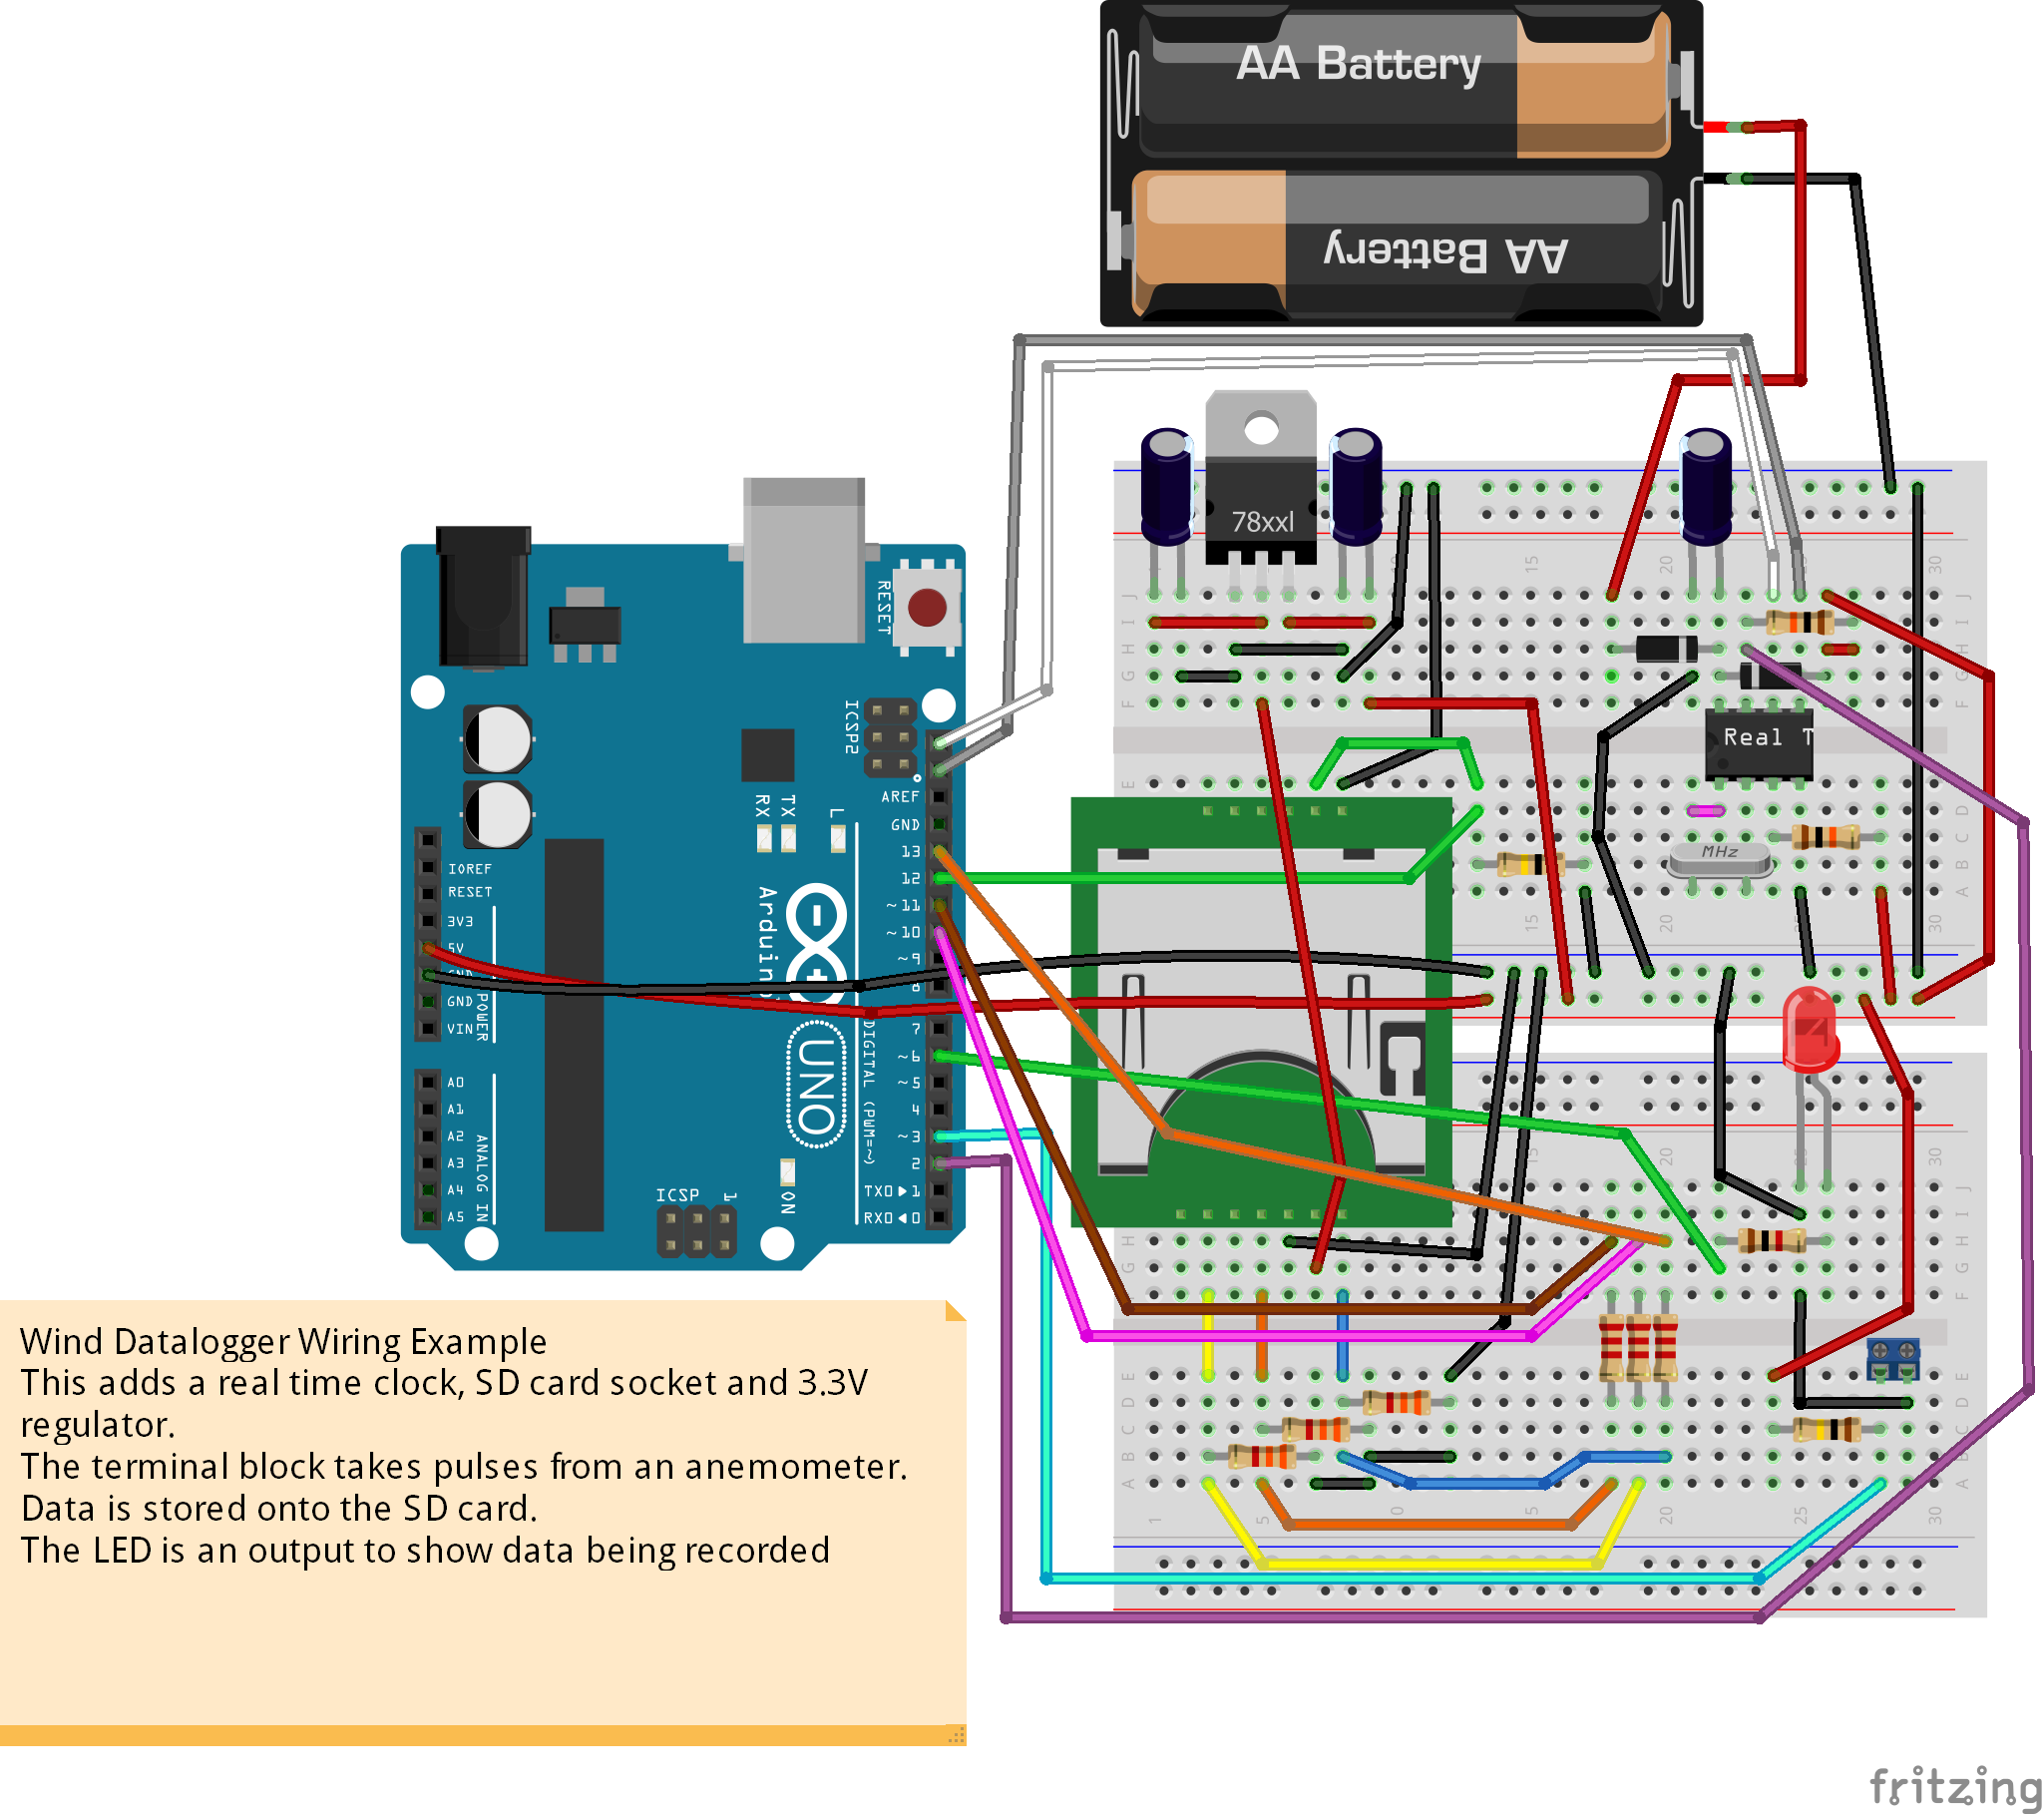 Anemometer To Arduino Wiring Schematic 38 Diagram Images Wind Turbine Windlogger Winddatalogger Bb Low Cost Datalogger Renewable Energy Innovation Feet Per Minute At Cita